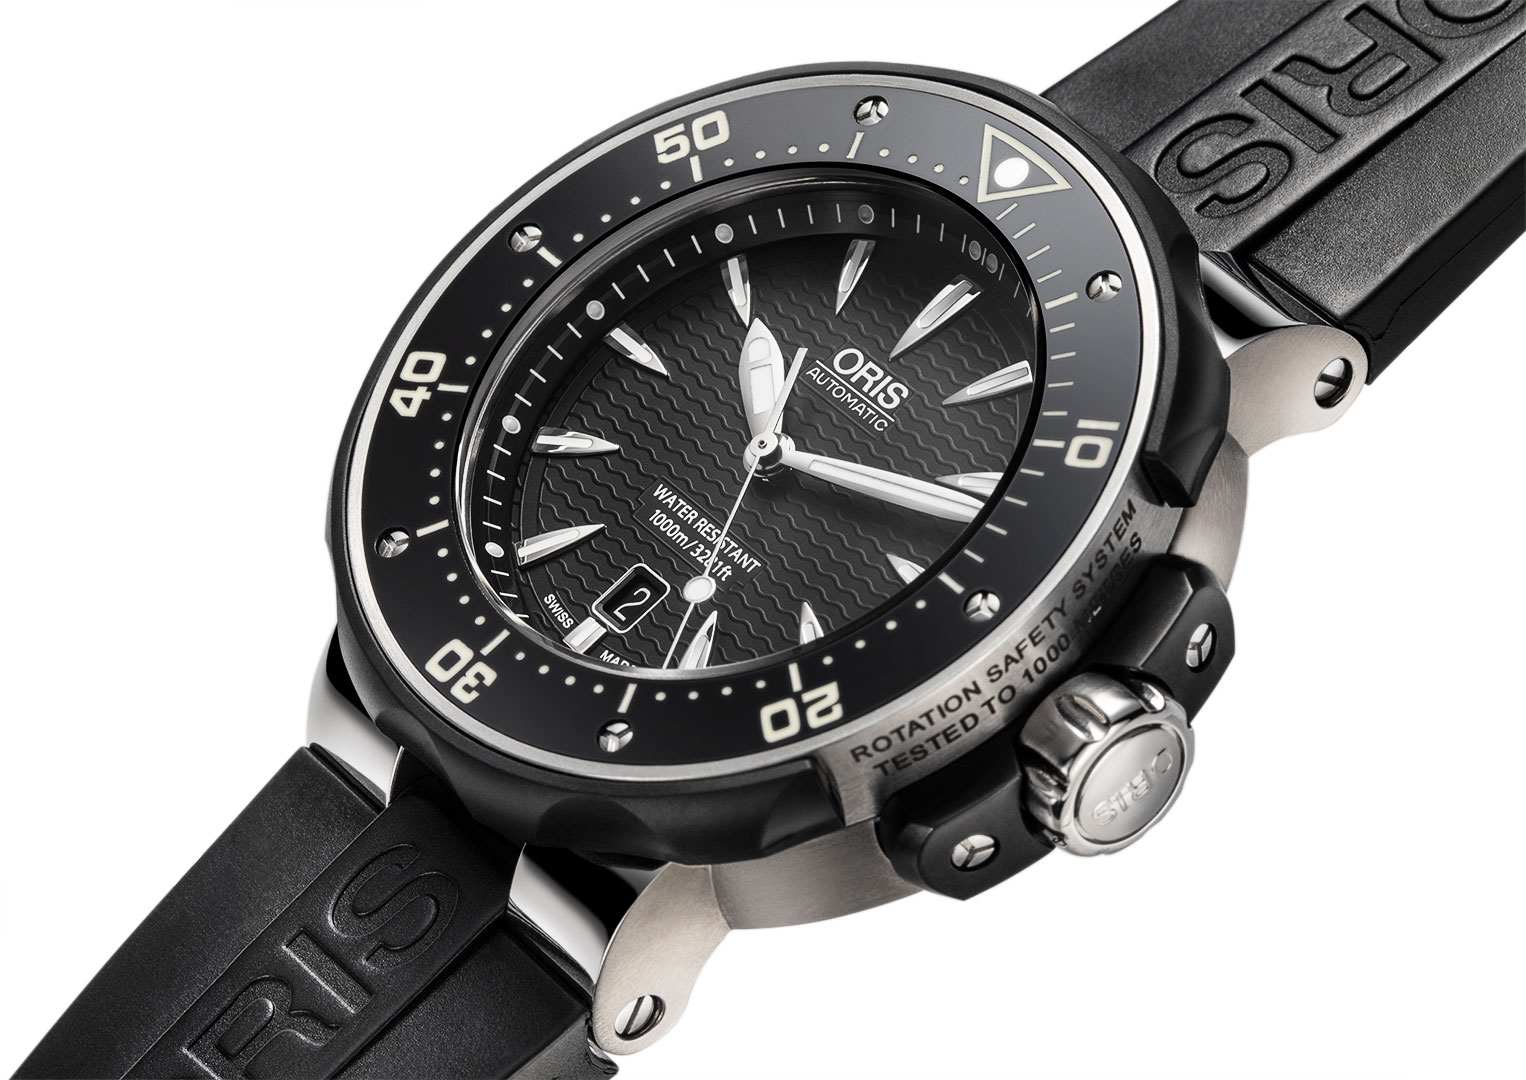 Oris watches can cost anywhere between 1 and 10 thousand pounds